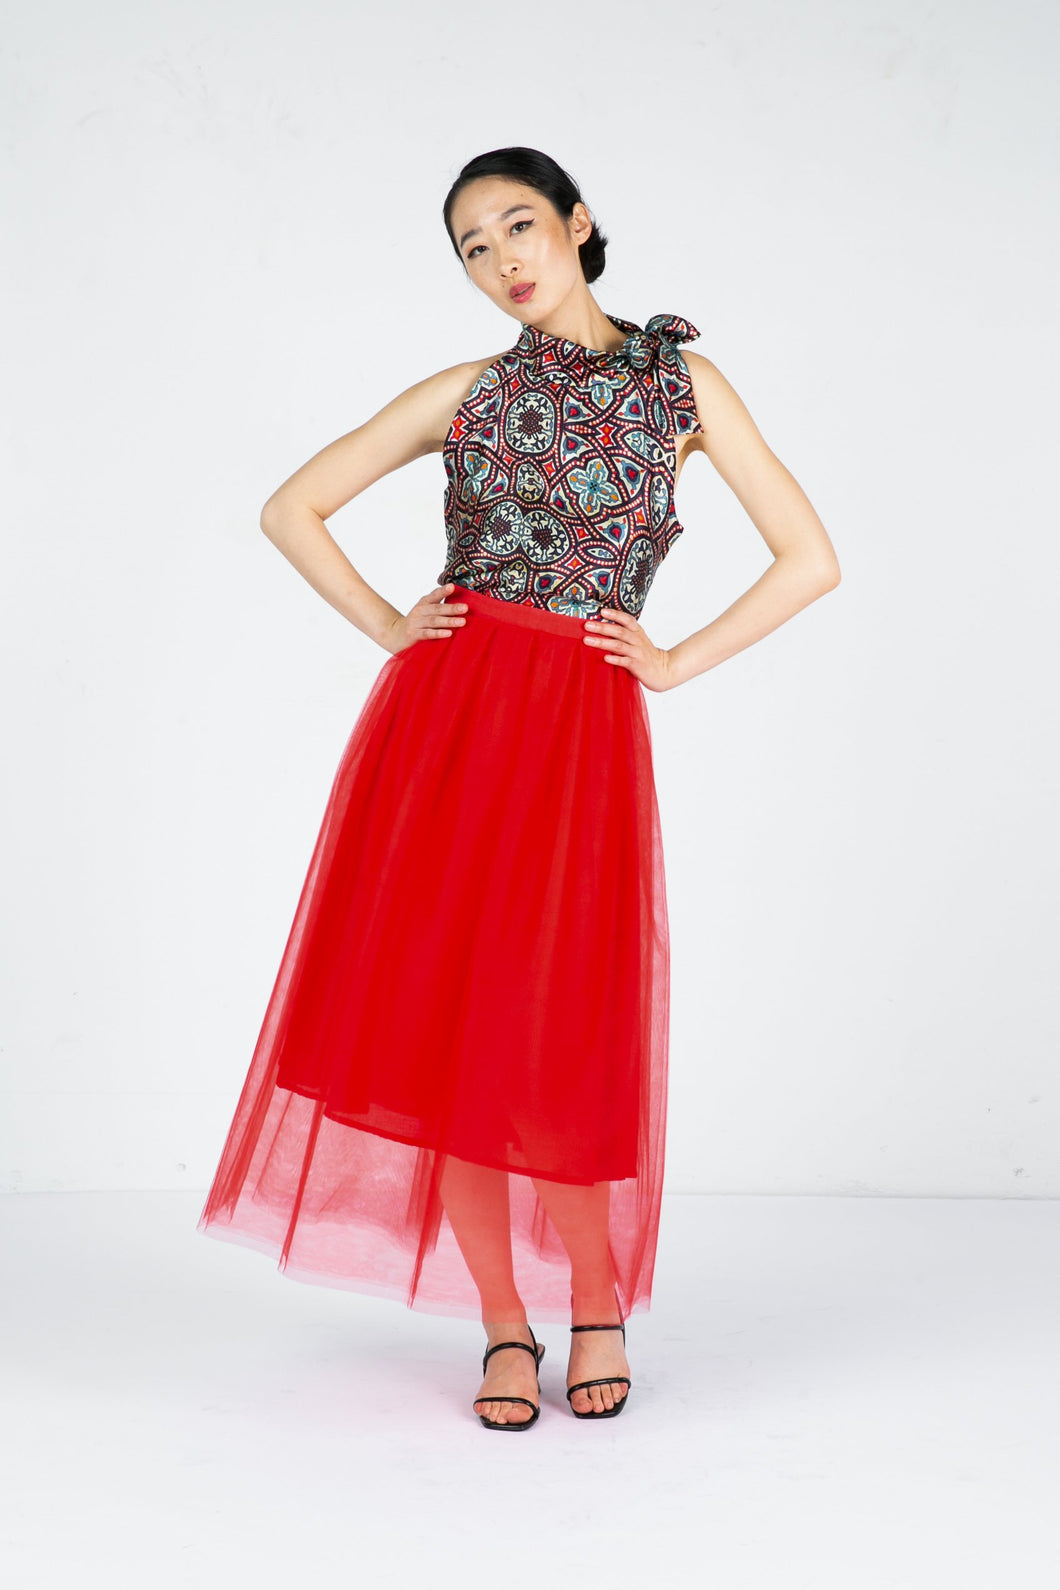 Model wears red tulle skirt with sleeveless printed top